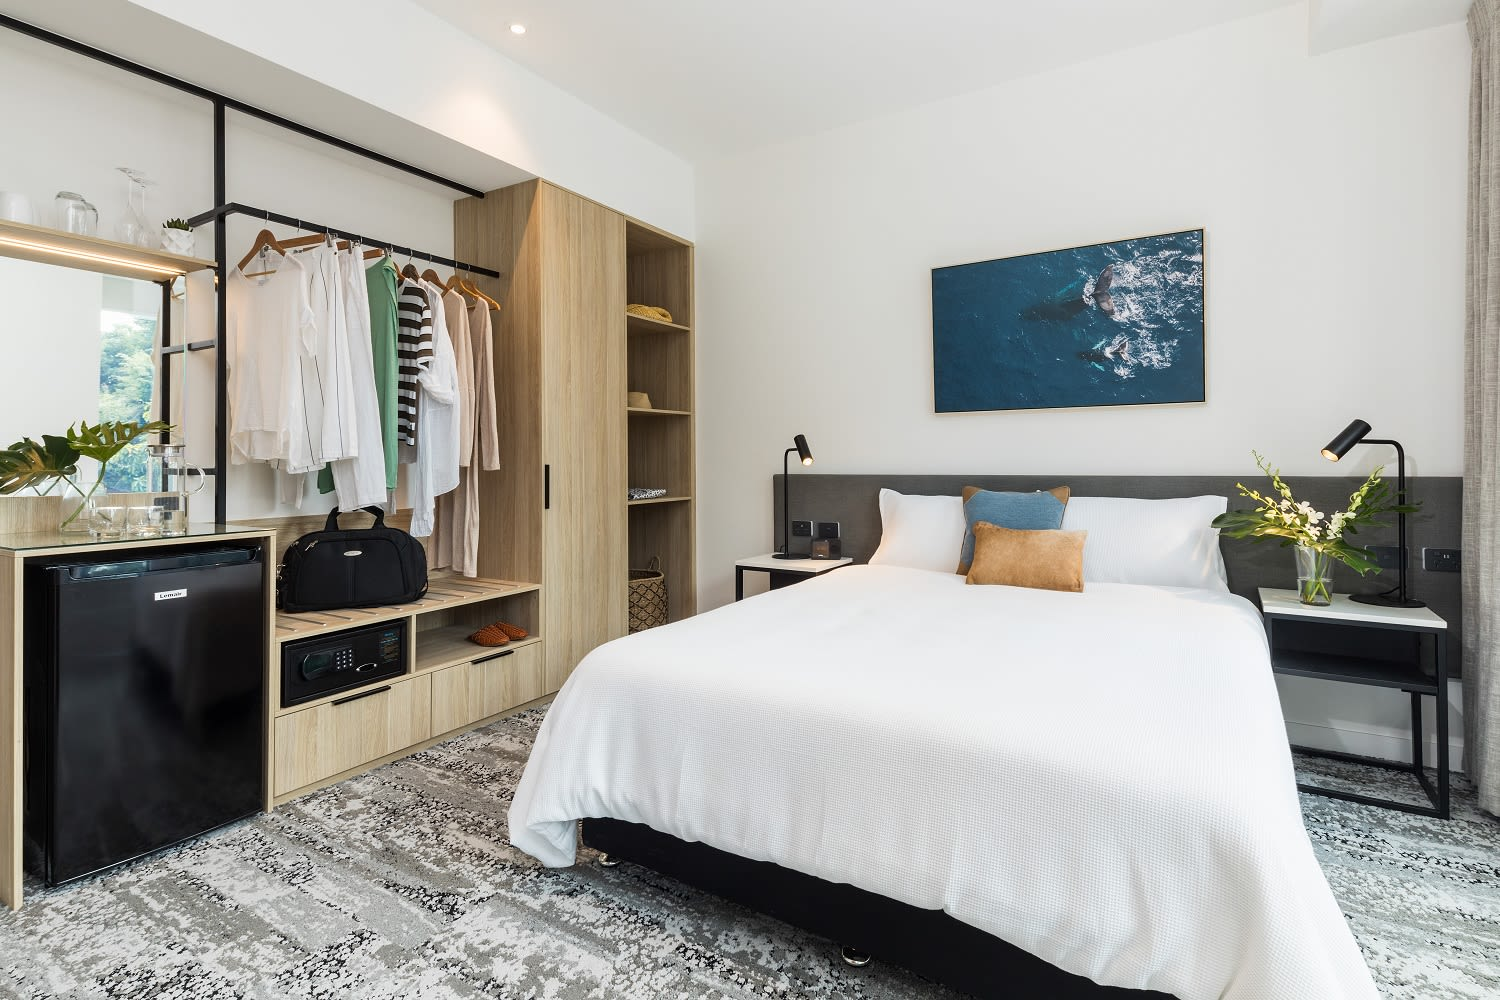 Oaks to Debut in Cairns with New Hotel Set to Open in September 2020